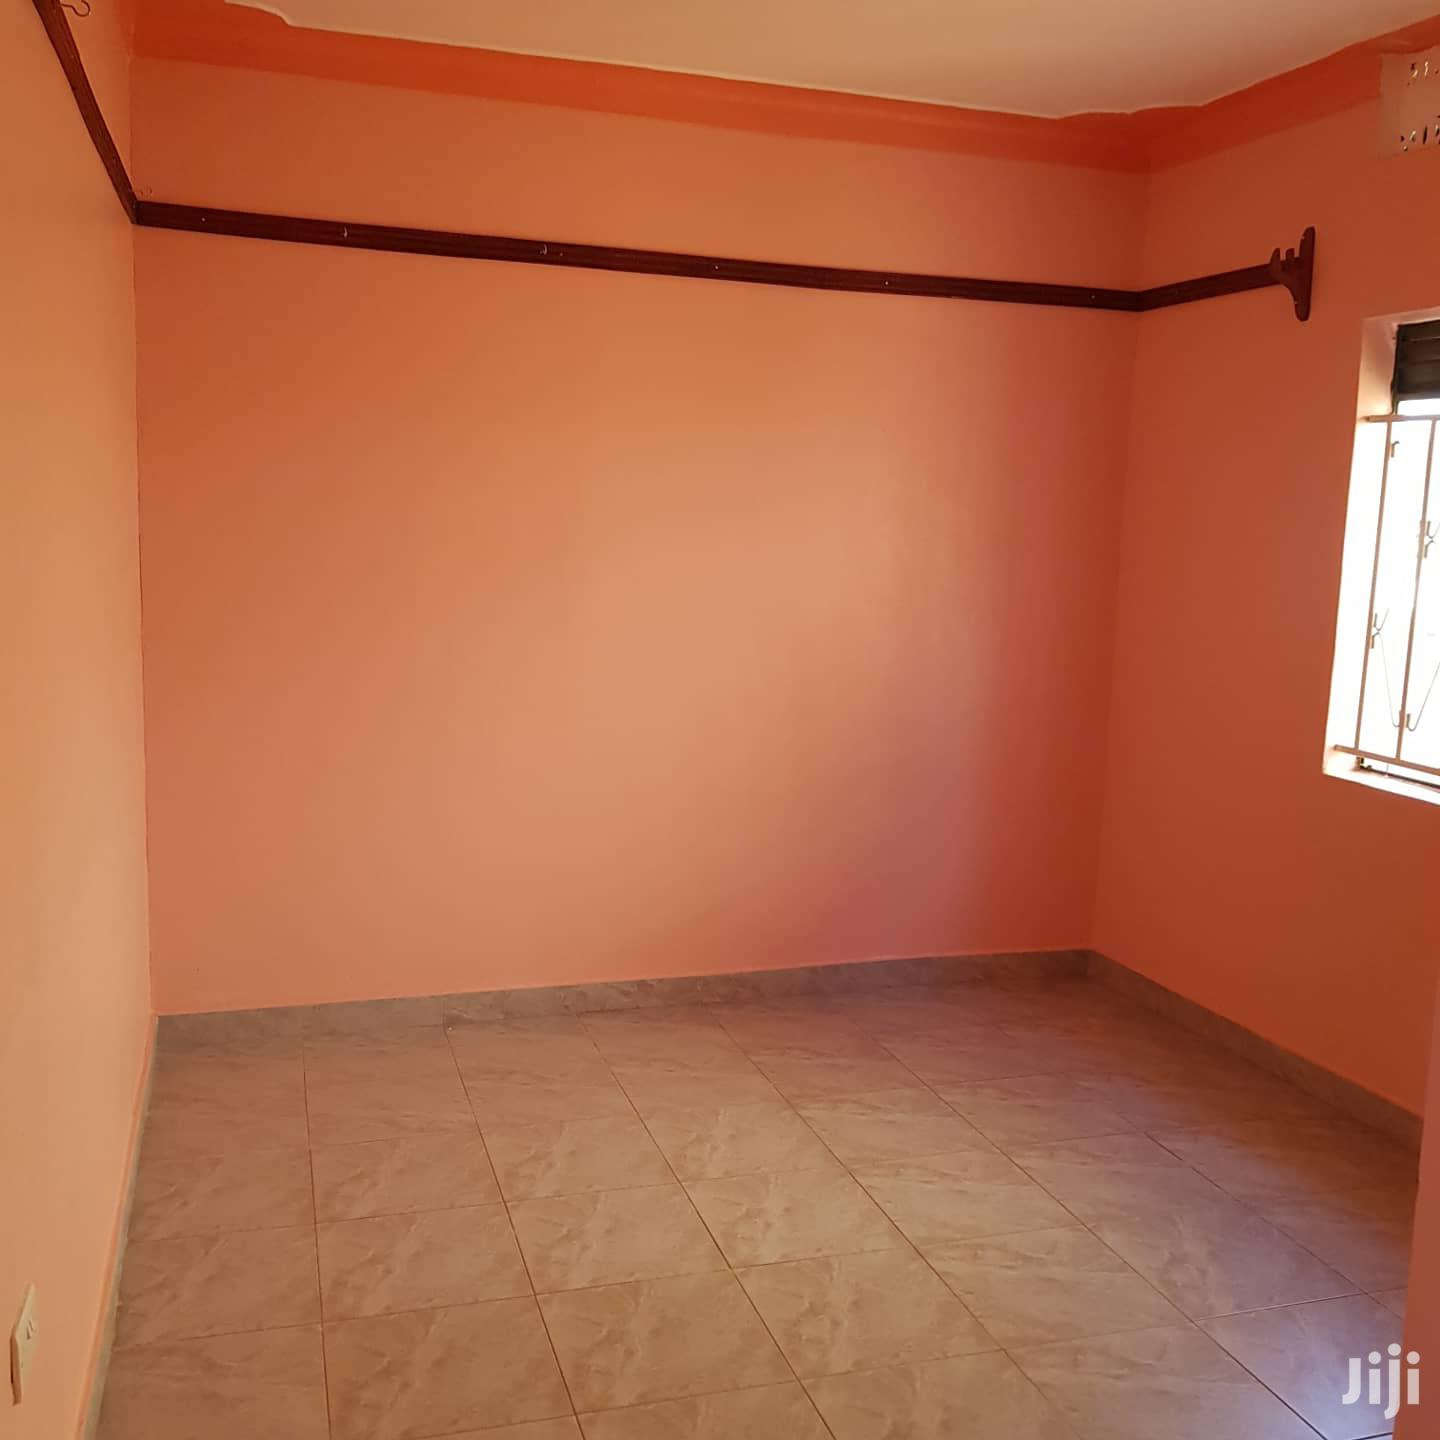 Double Room House In Kasangati For Rent   Houses & Apartments For Rent for sale in Kampala, Central Region, Uganda